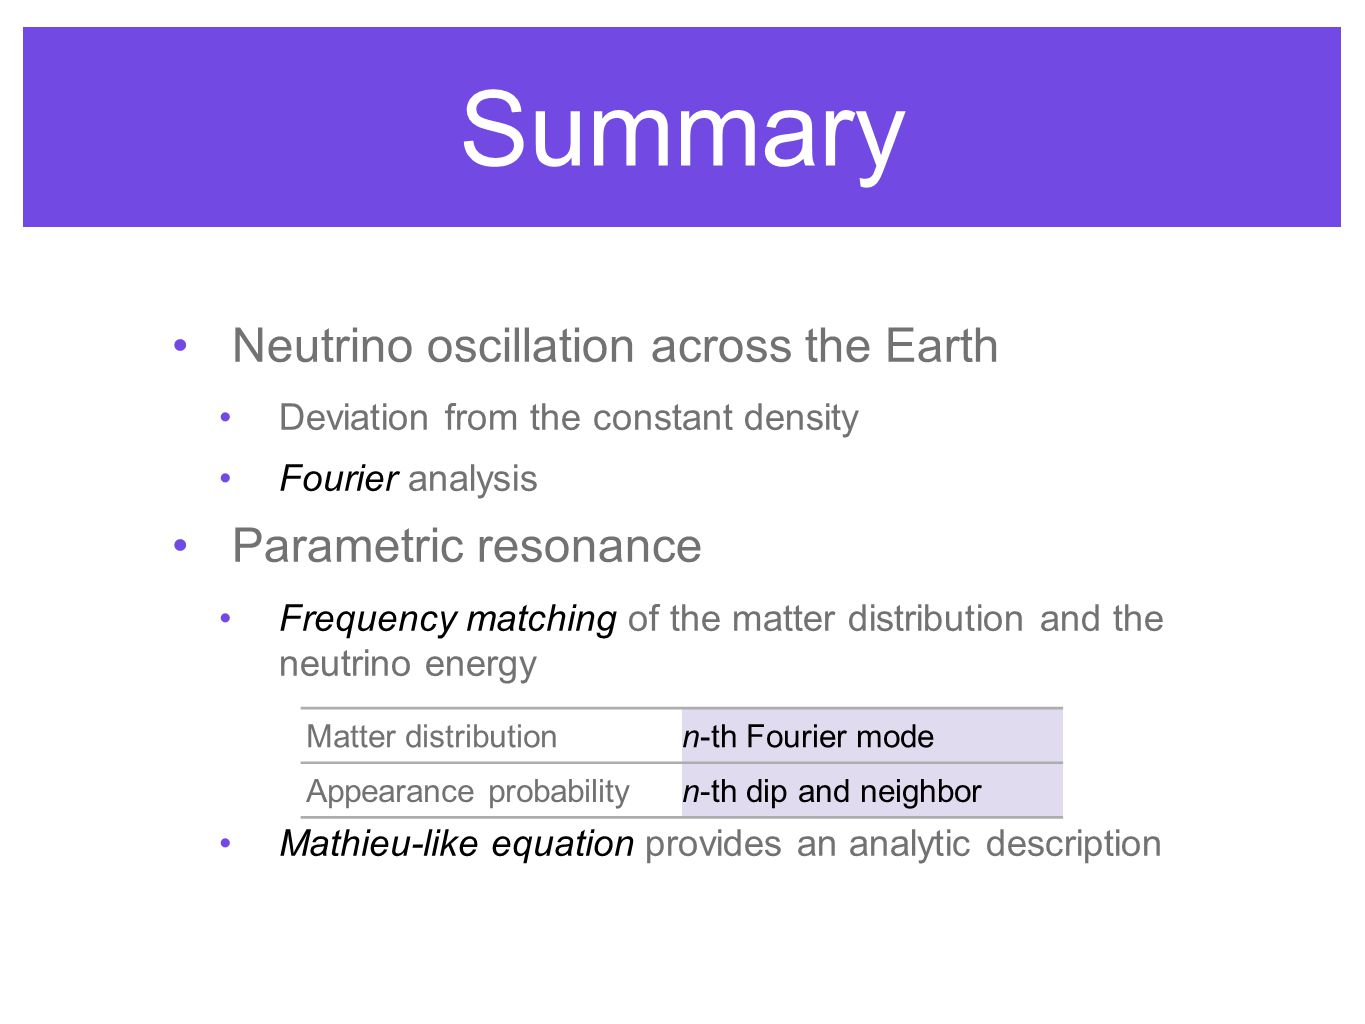 Summary Neutrino oscillation across the Earth Deviation from the constant density Fourier analysis Parametric resonance Frequency matching of the matter distribution and the neutrino energy Mathieu-like equation provides an analytic description Matter distributionn-th Fourier mode Appearance probabilityn-th dip and neighbor